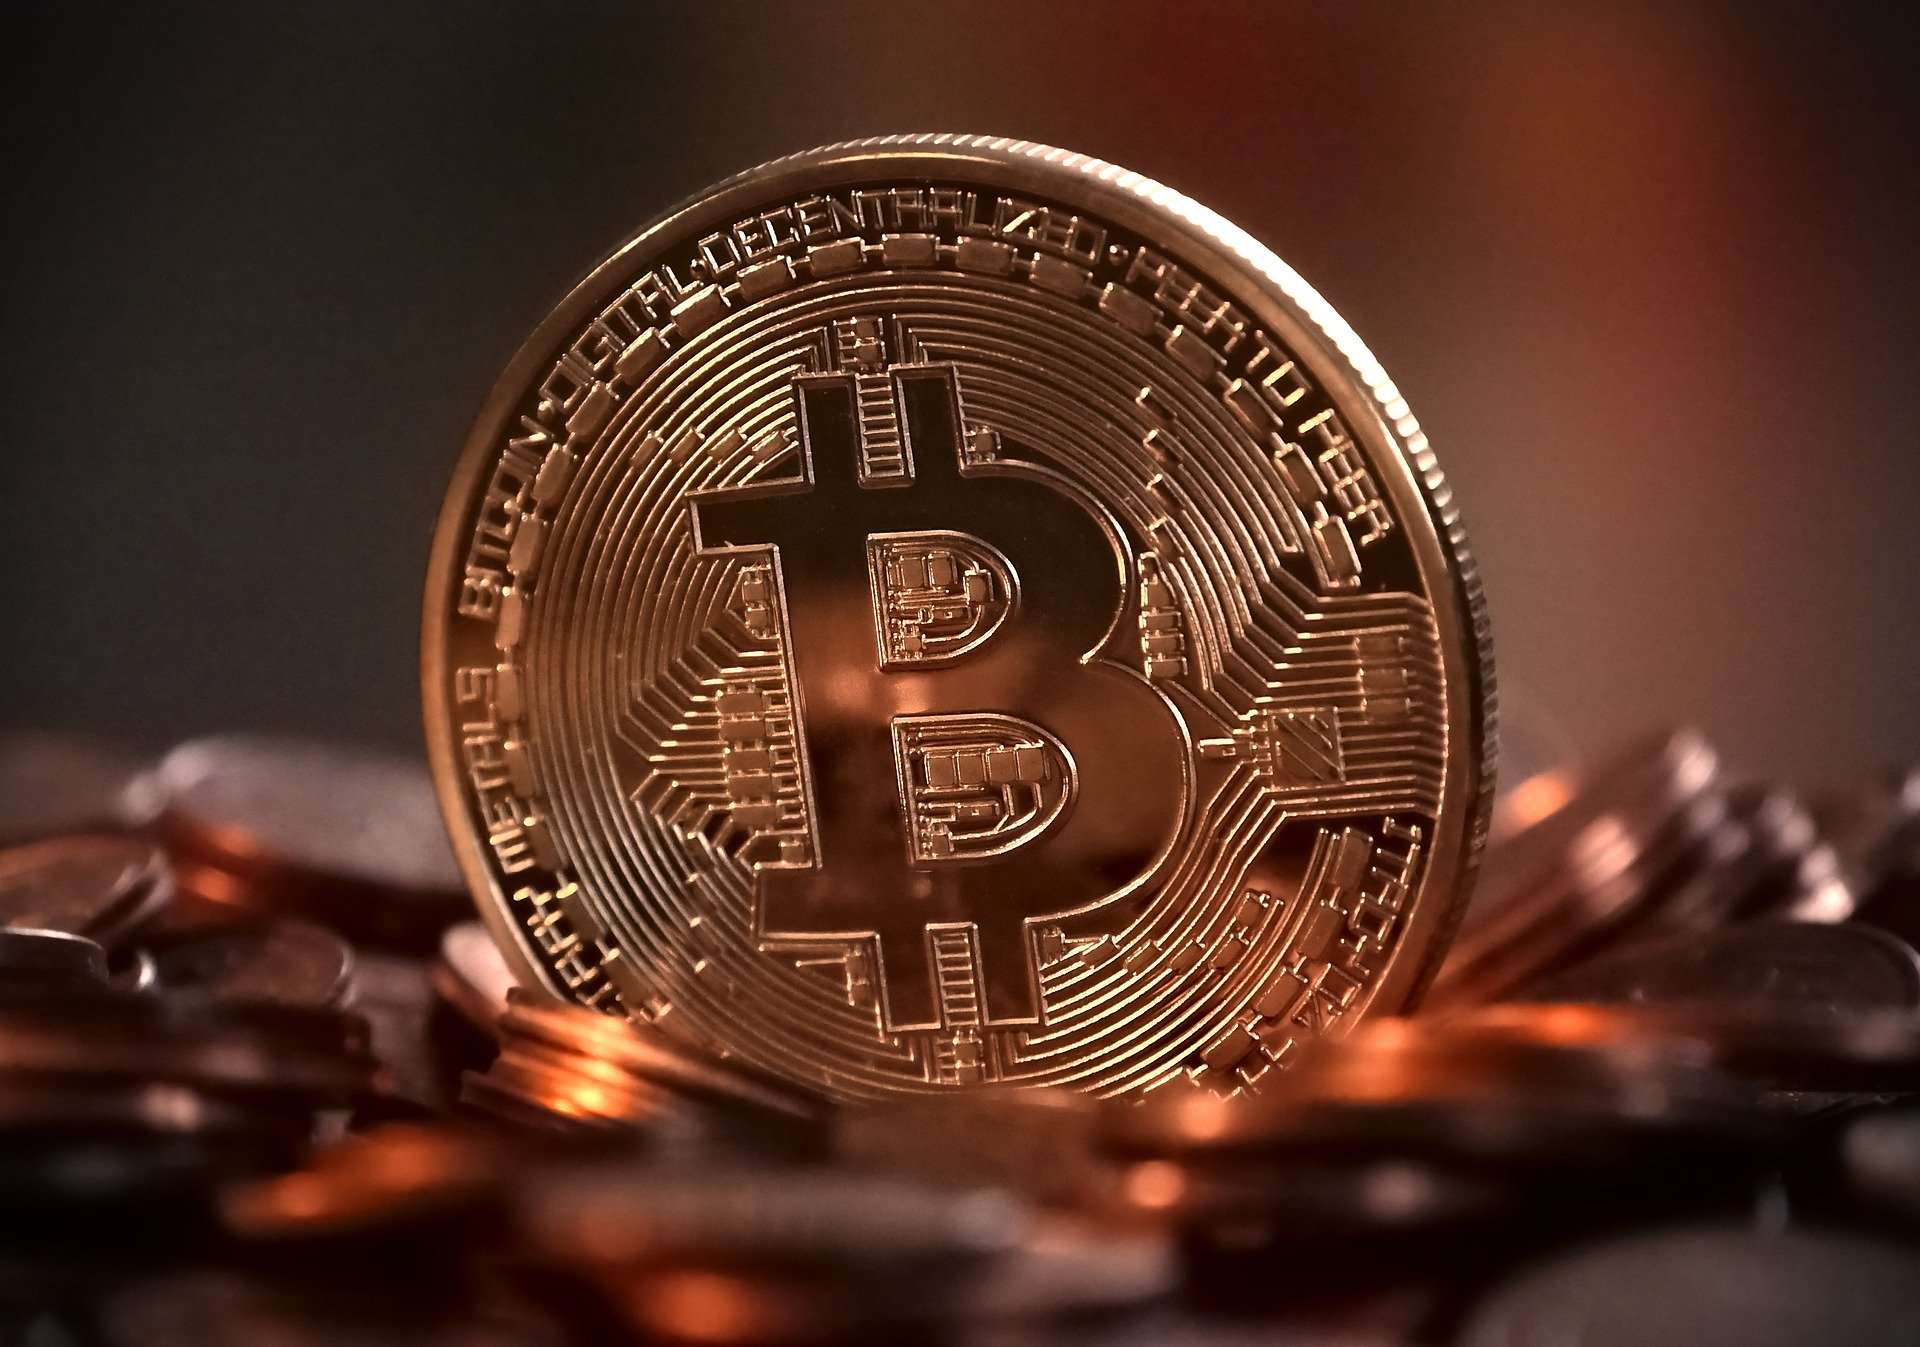 No, Bitcoin Isn't Correlated to the Stock Market or Gold – Claims Analyst